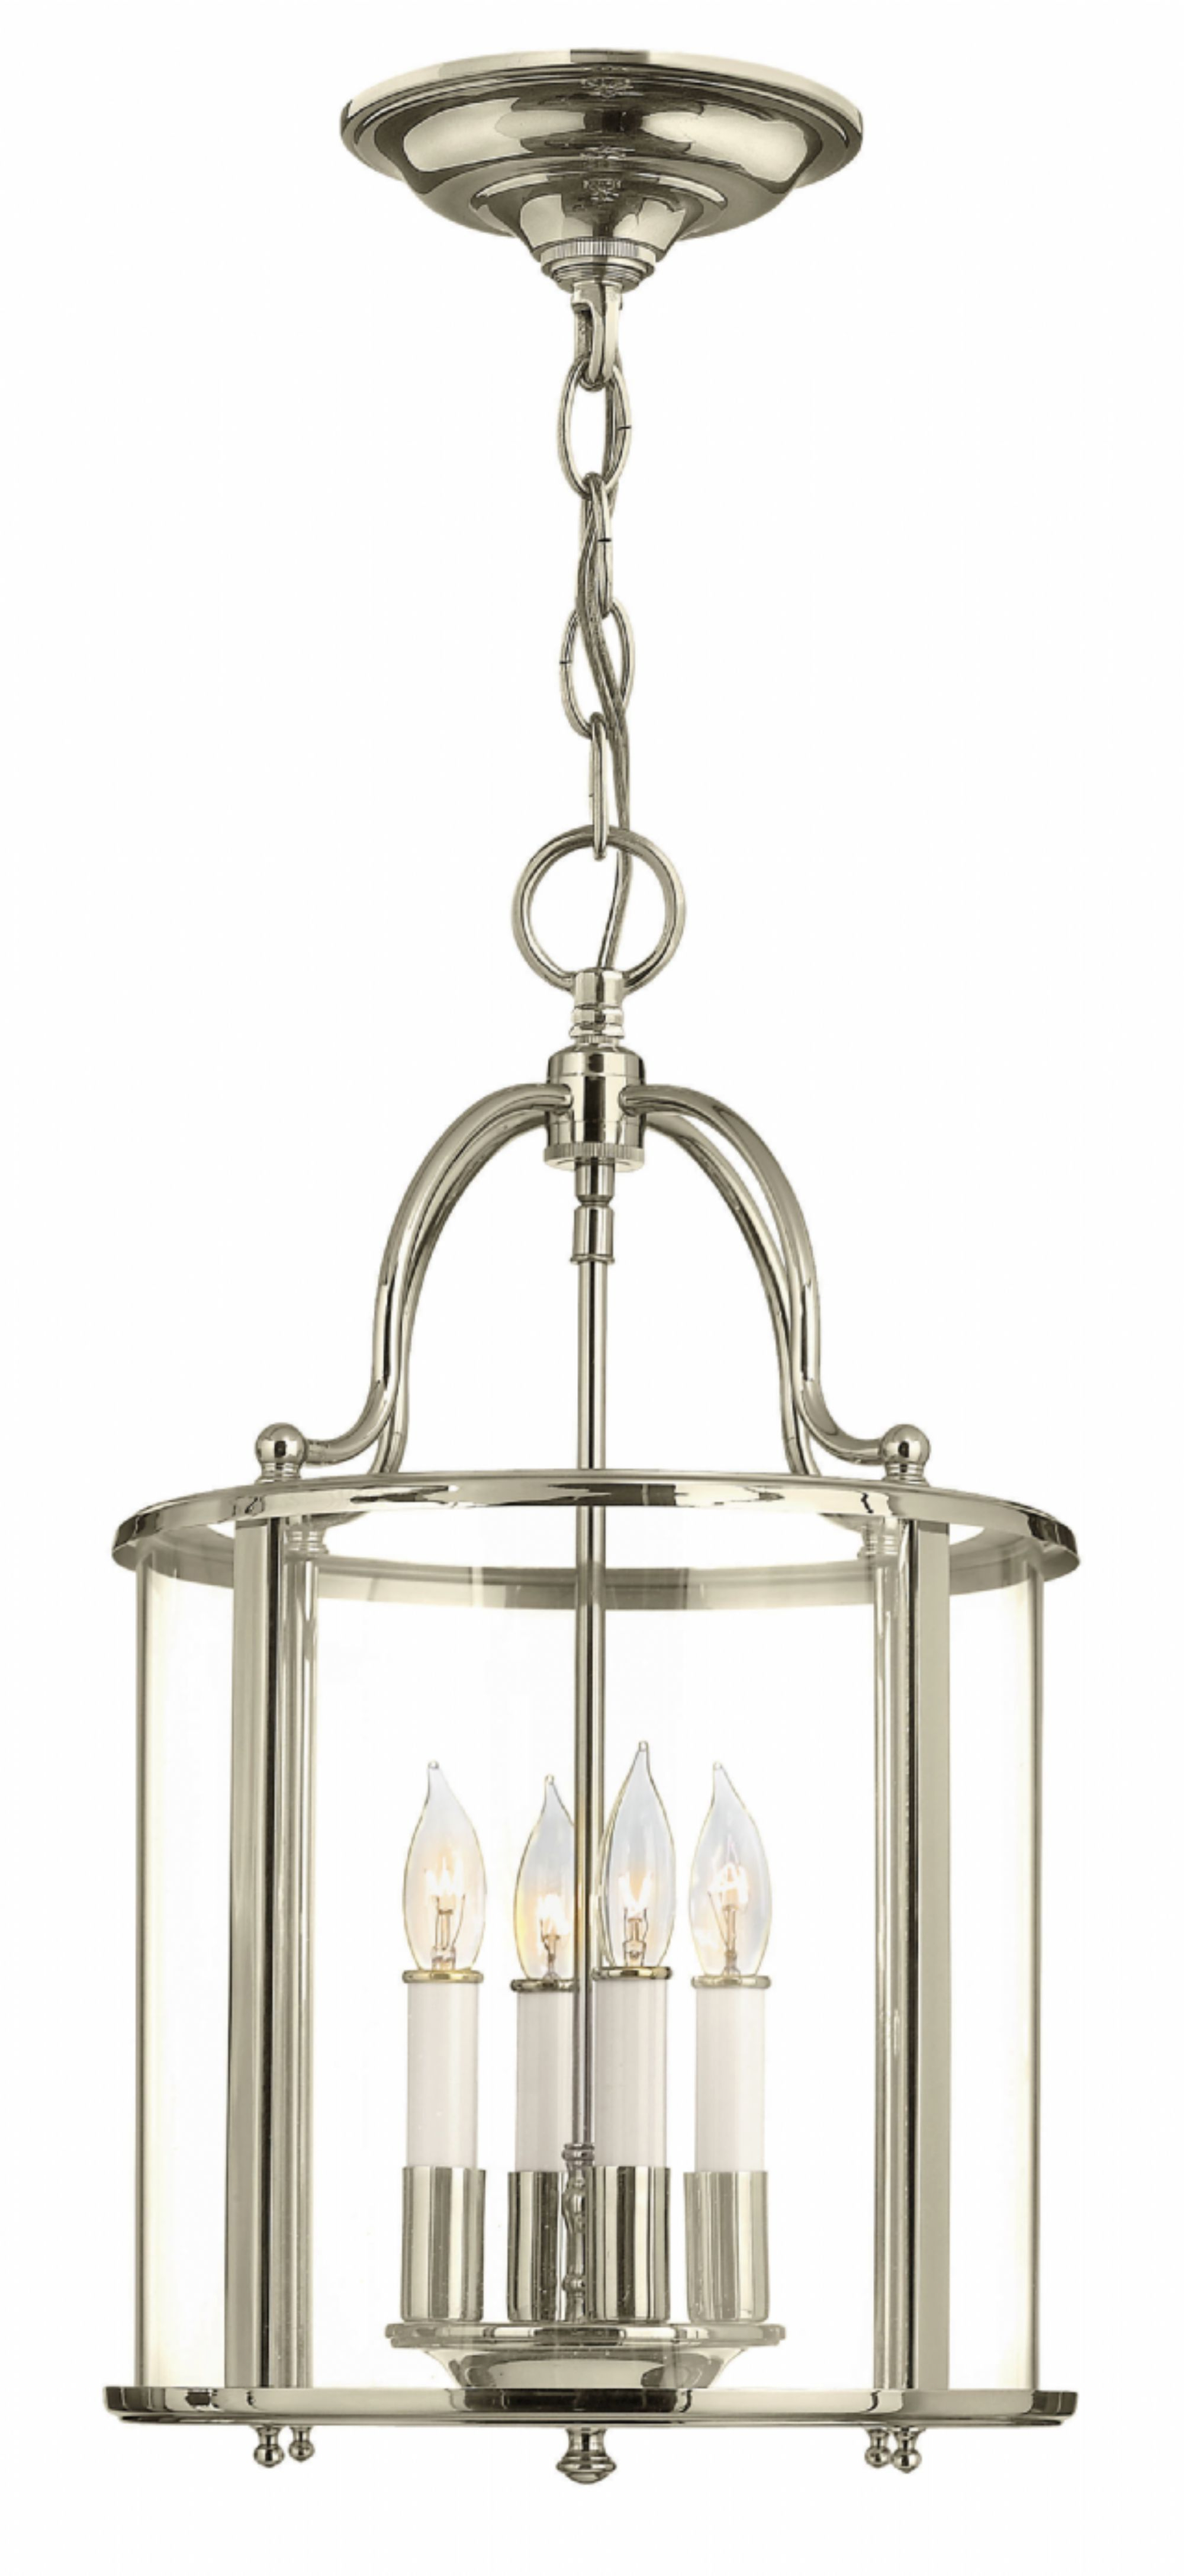 Tessie 3 Light Lantern Cylinder Pendants Within Current Hinkley Lighting – Gentry 3474Pn Comes In Polished Nickel (View 20 of 20)